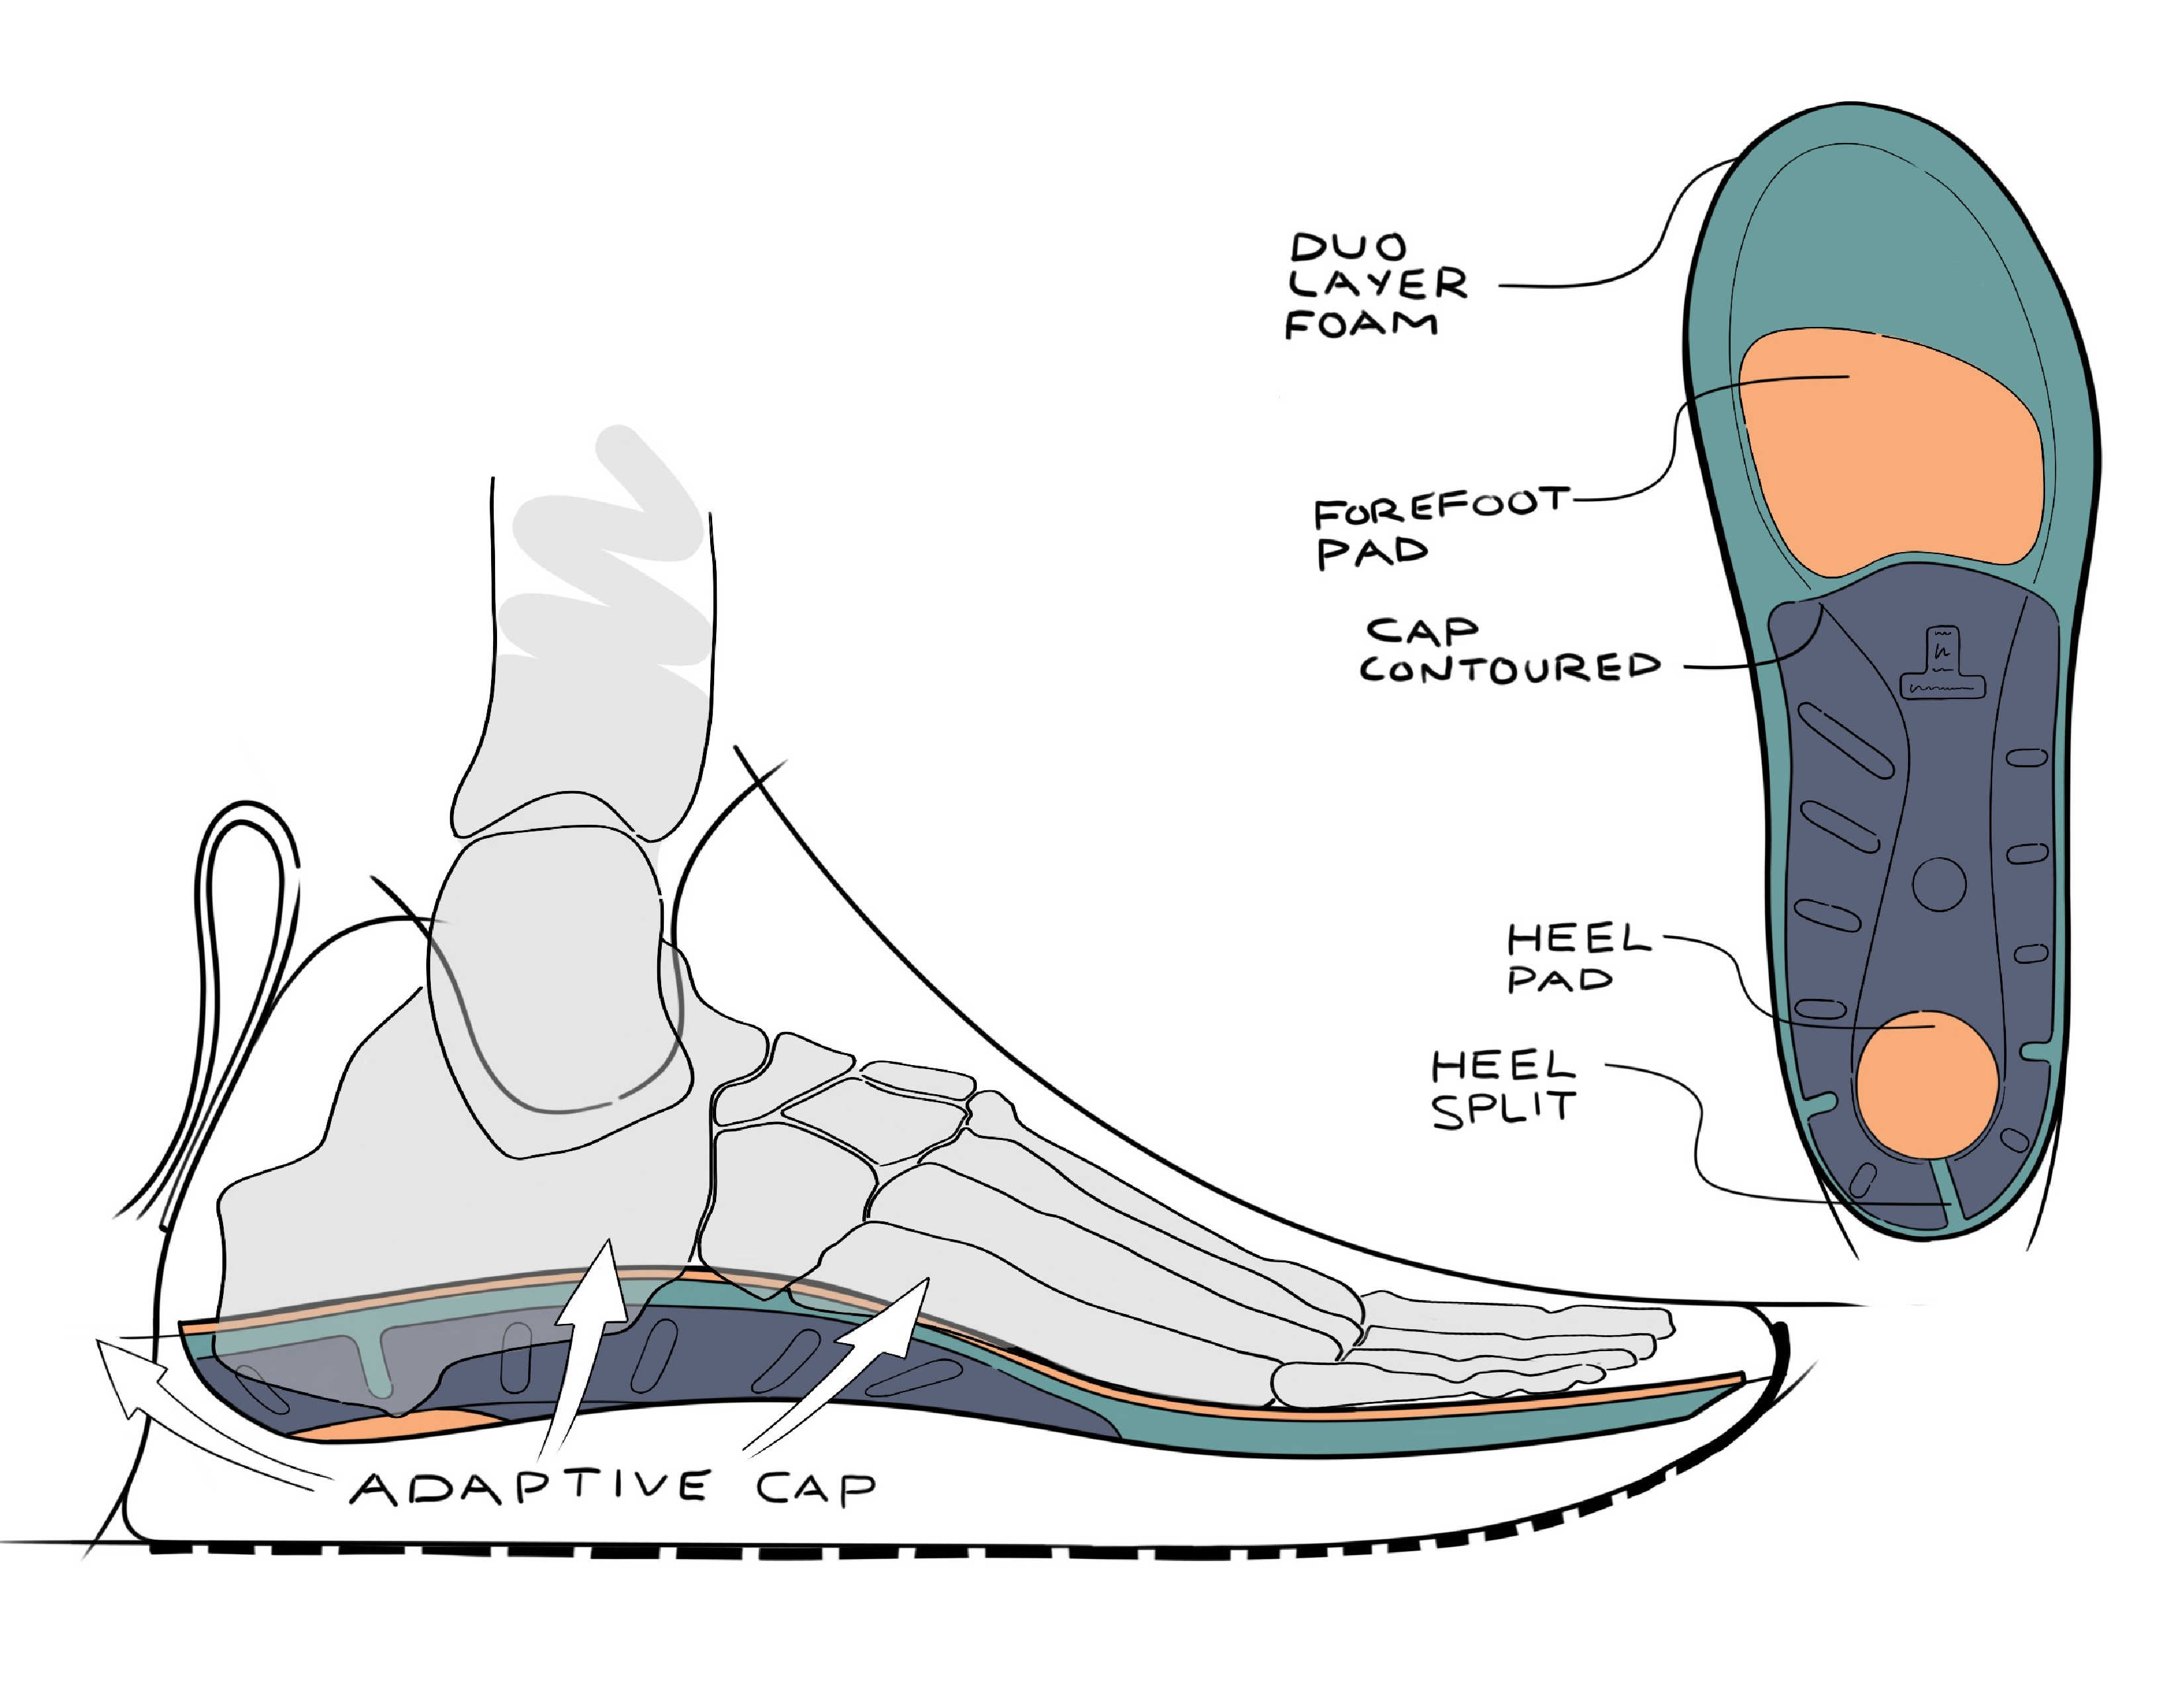 A view of the bottom features of this new insole and a sketch of how it fits the foot